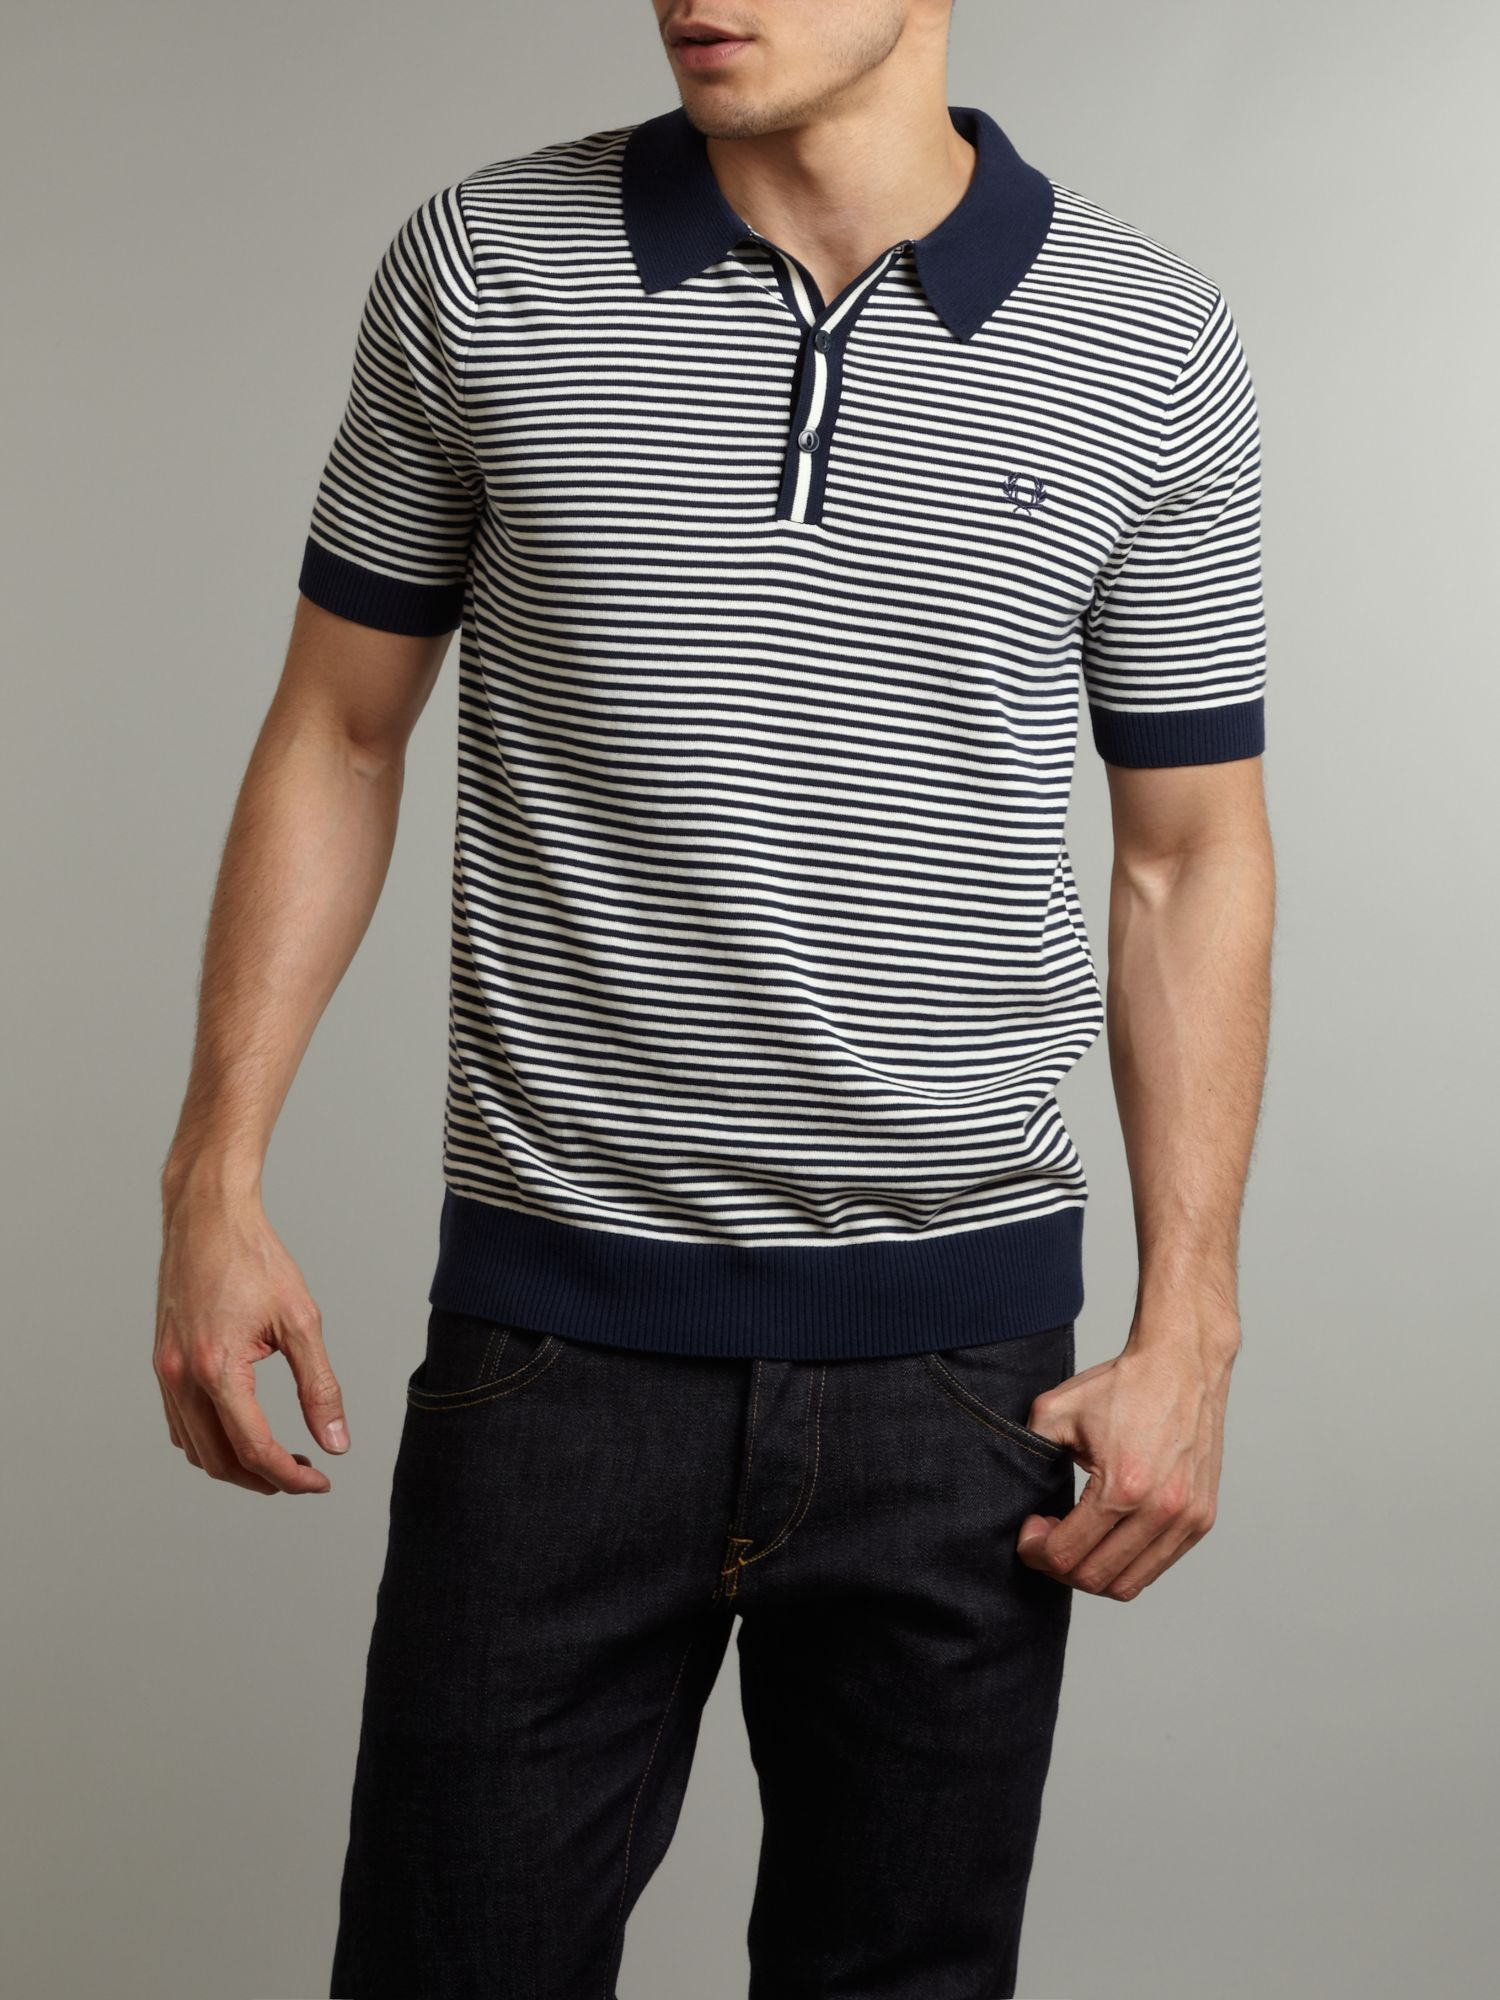 Fred Perry Fine Stripe Knitted Polo Shirt In Blue For Men